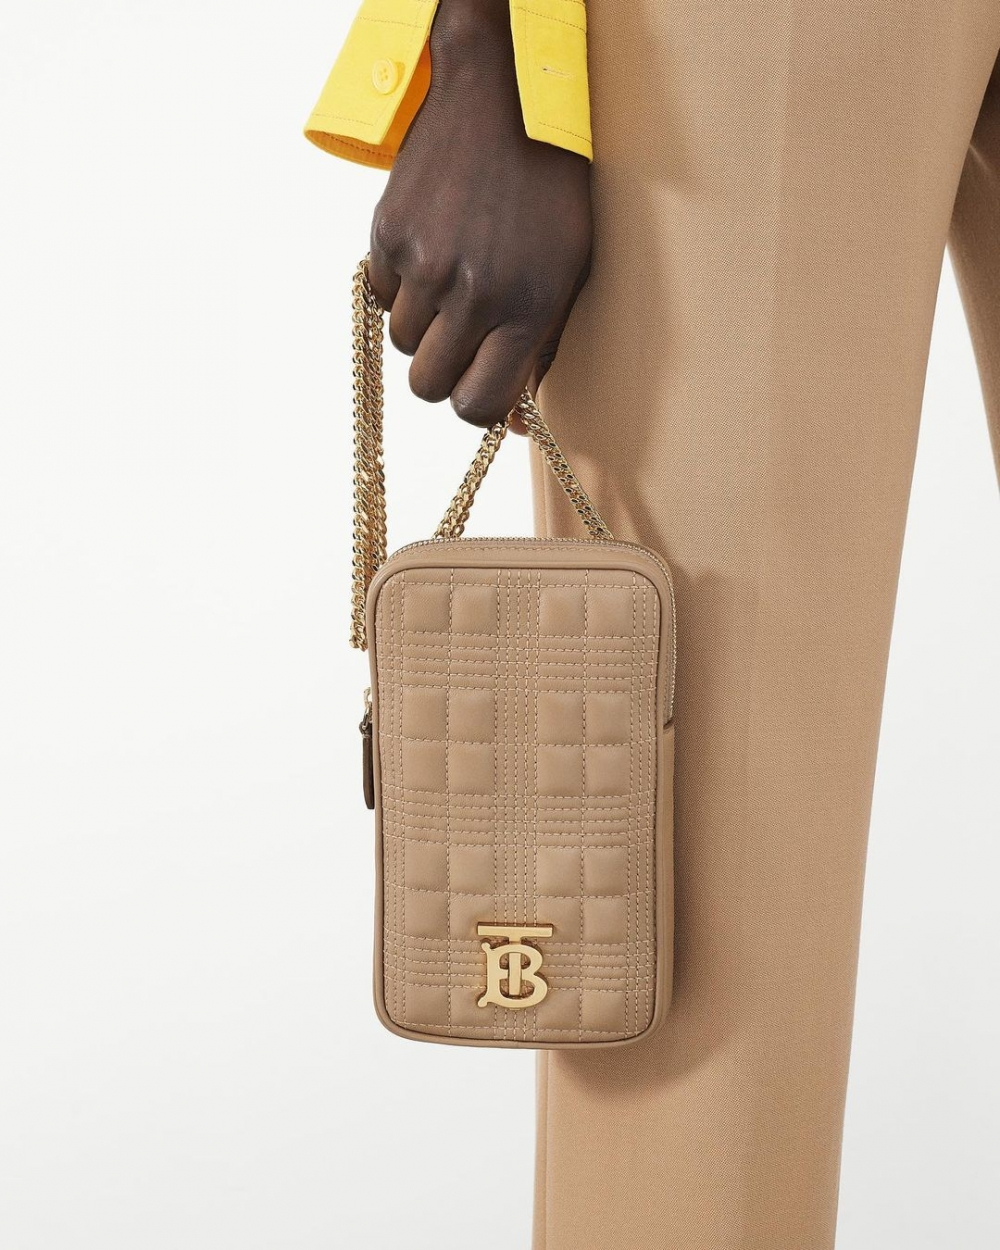 Burberry Quilted Lambskin Lola Pouch with Chain Strap